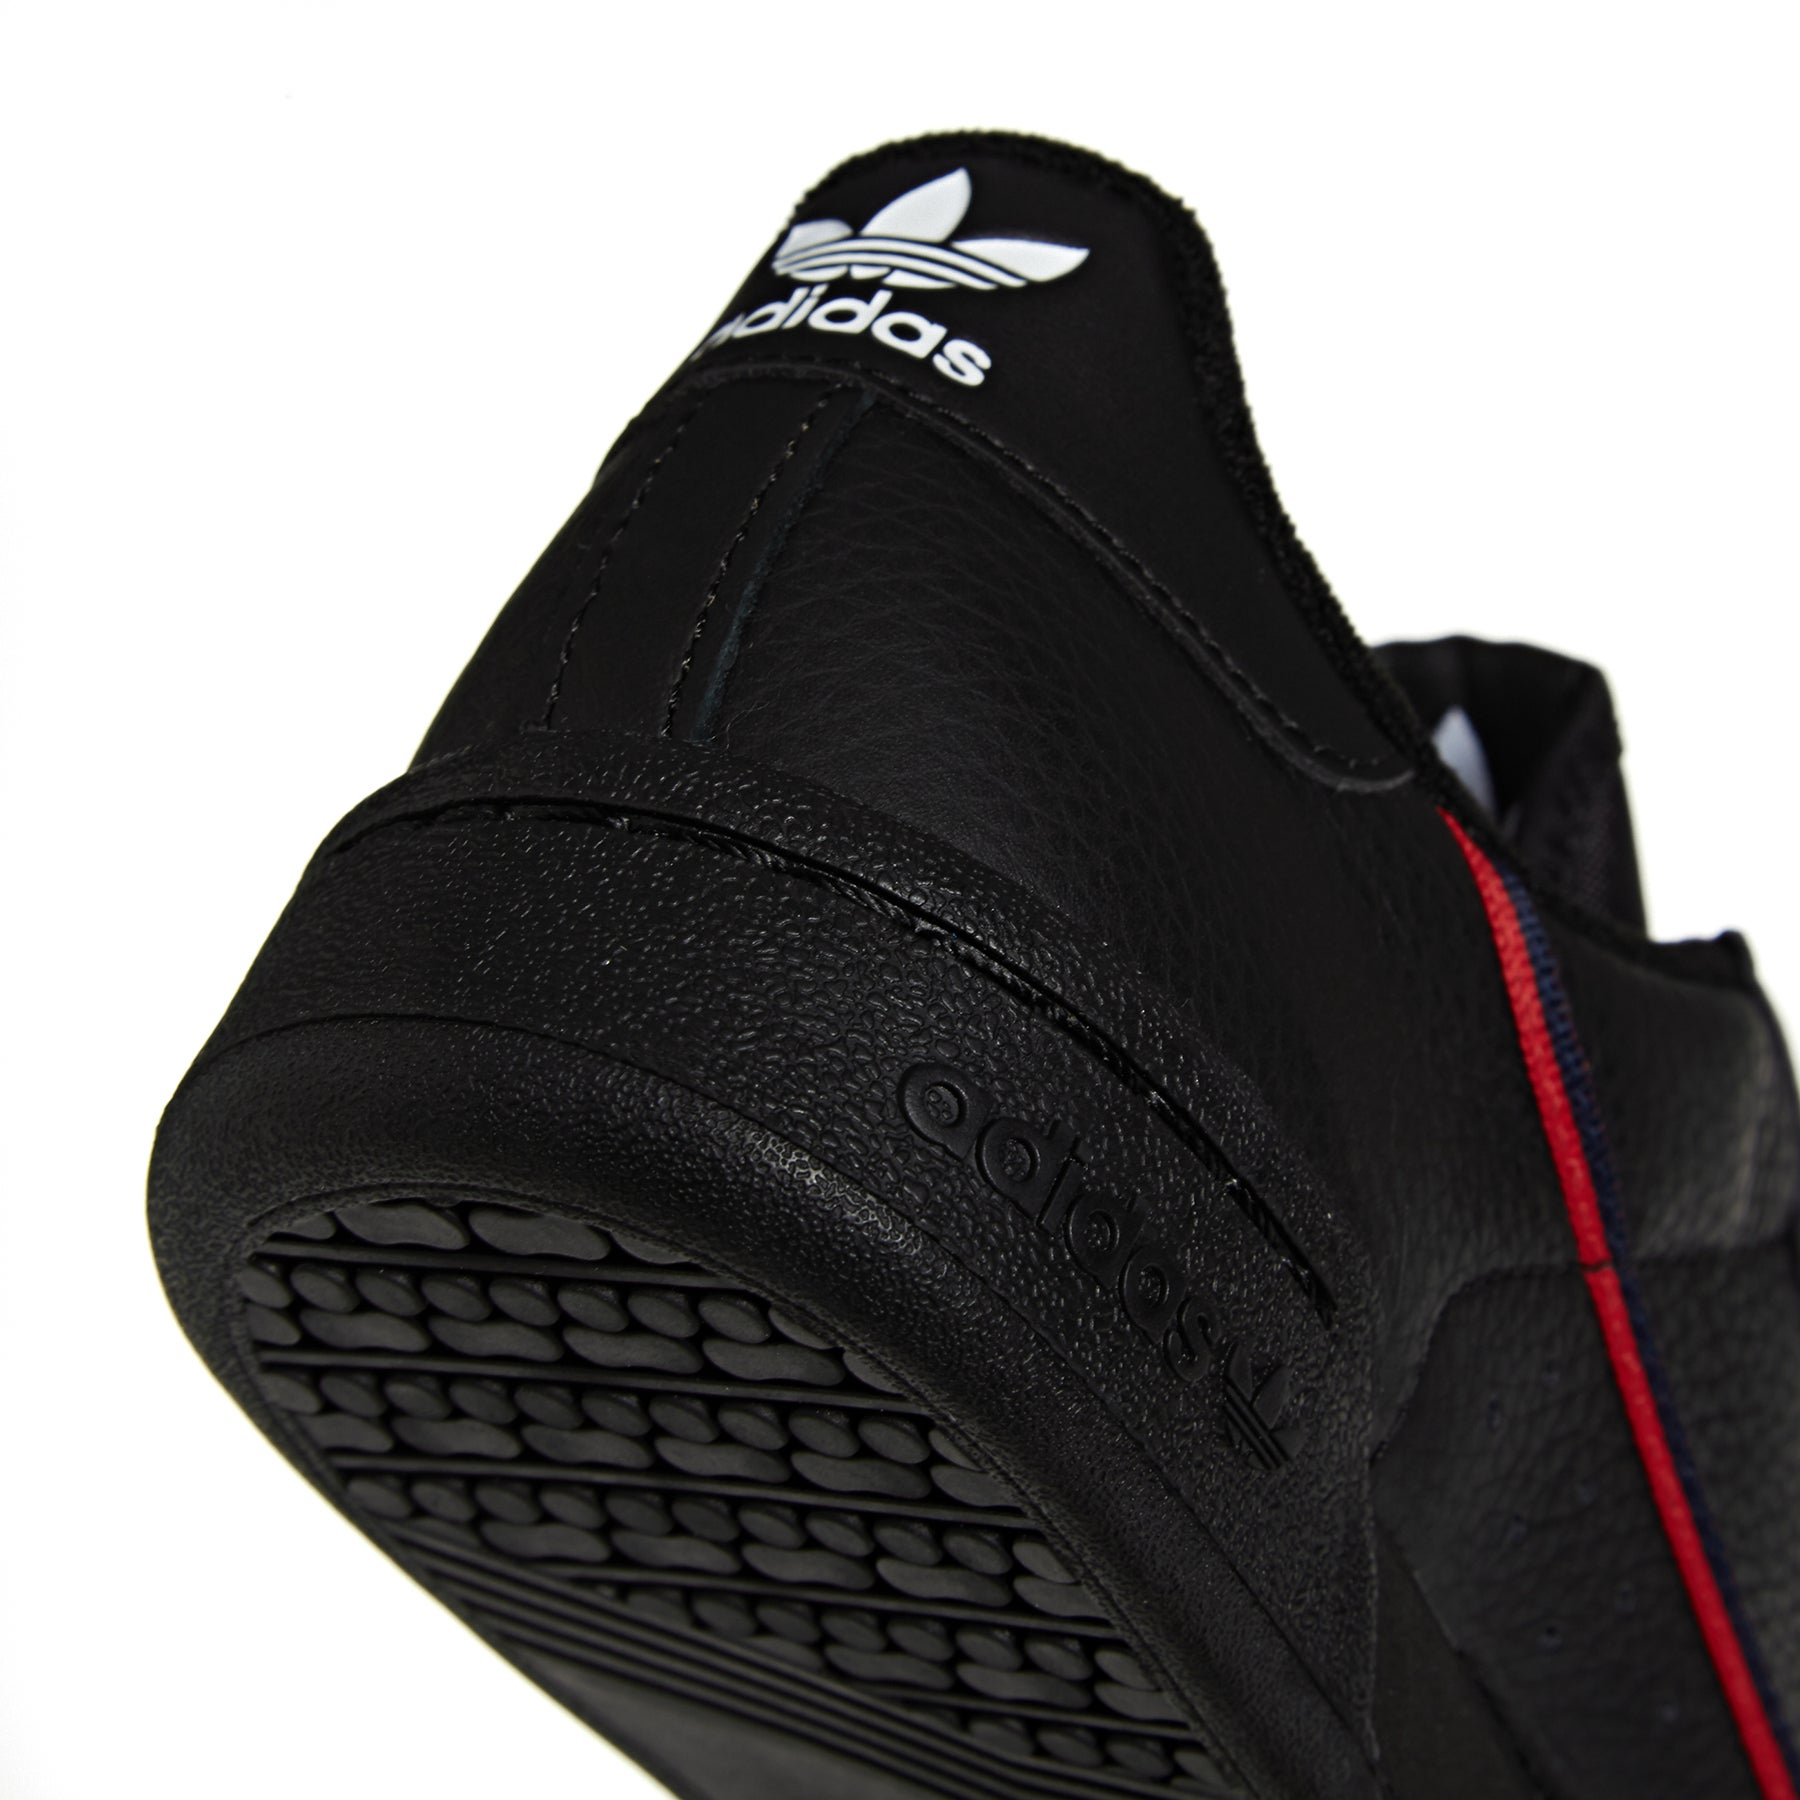 01d4c261799ac3 Originals Continental Surfdome 80 Available Adidas From Boty agx1qxZw